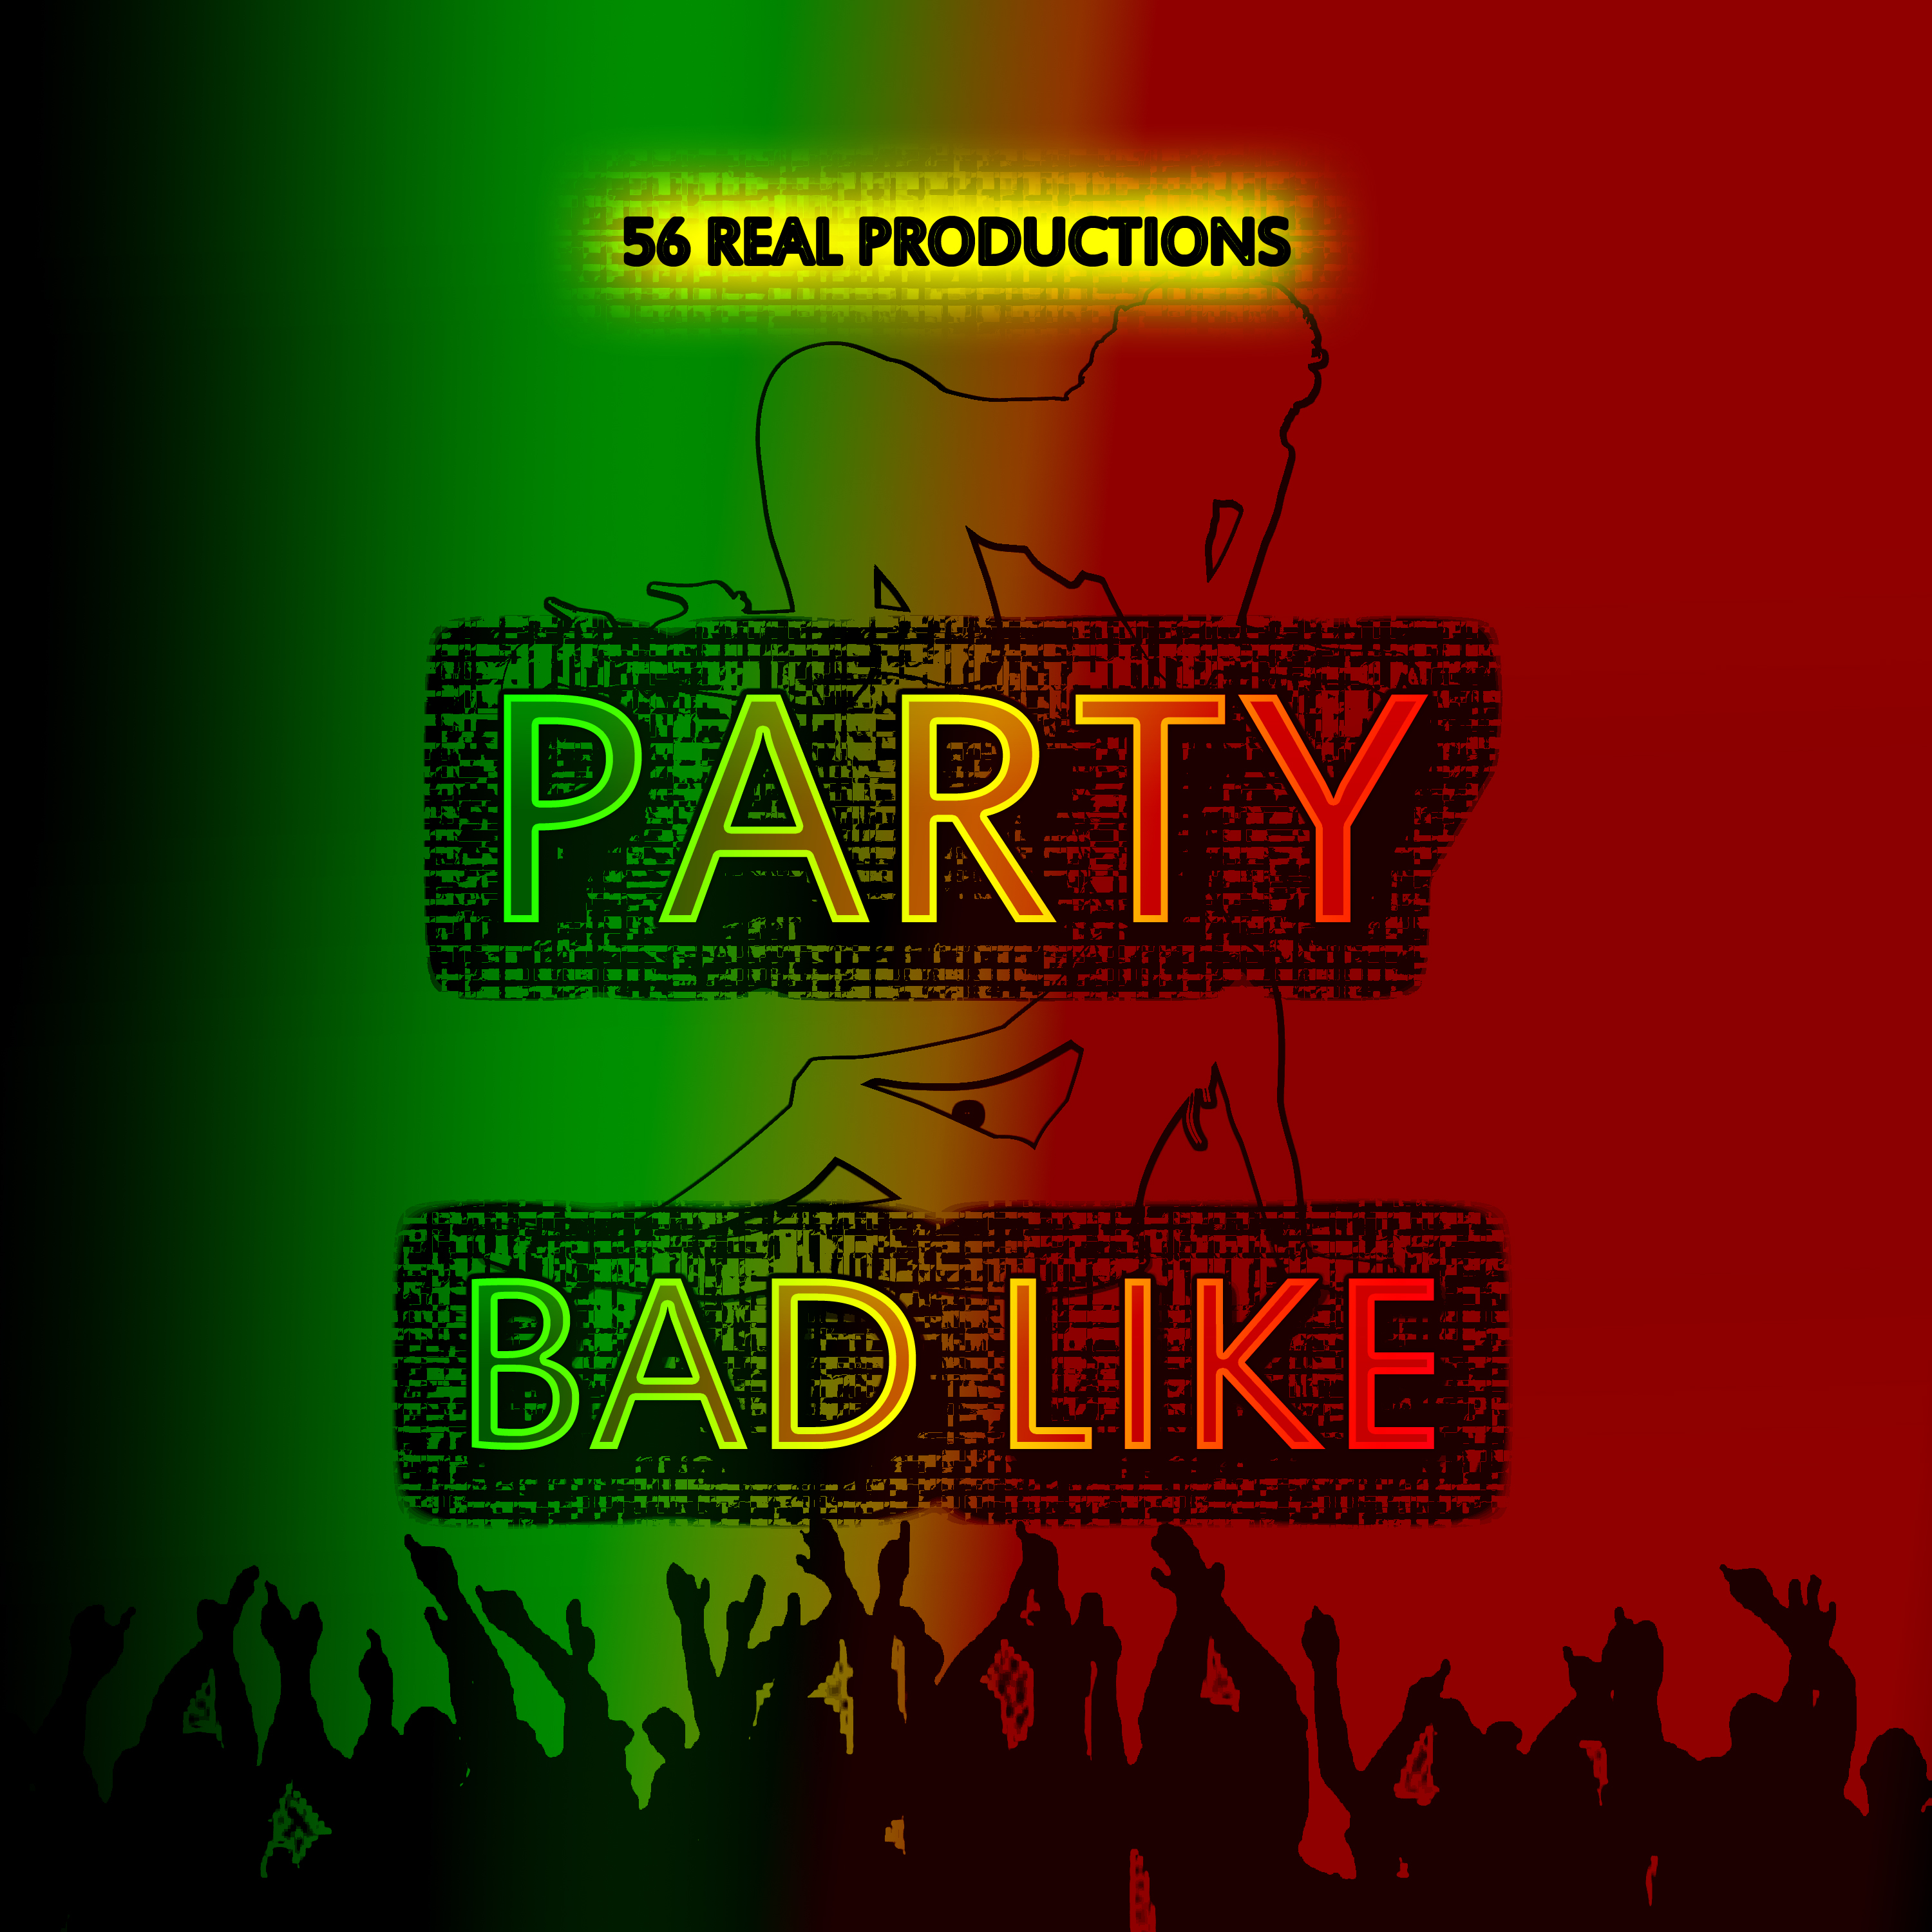 /myT03f00T3891/0-MUSIC/2017/12_DECEMBER/10/Riddims/Party_Bad_Like_Riddim_Full_Promo_-_56_Real_Productions/Party_Bad_Like_Riddim_Full_Promo_56_Real_Productions.jpg